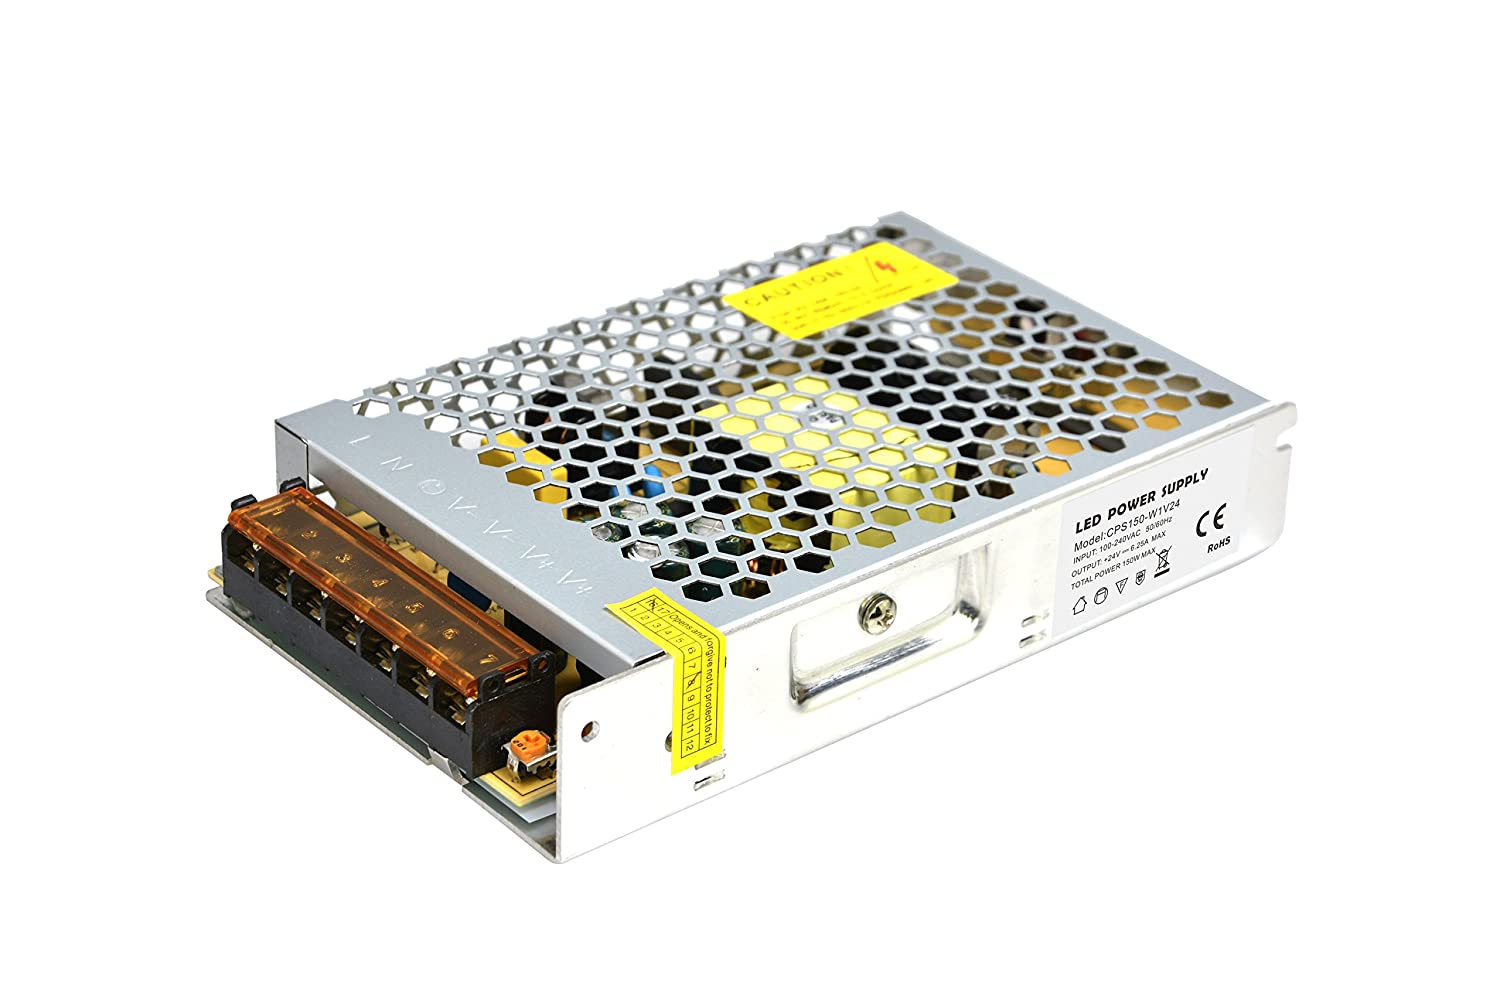 Dapenk CPS Series Indoor Ultra Thin Aluminum Case With Mesh 400W 24V Led Power Supply Unit PSU For LED Bulbs Strip Light CPS400-H1V24